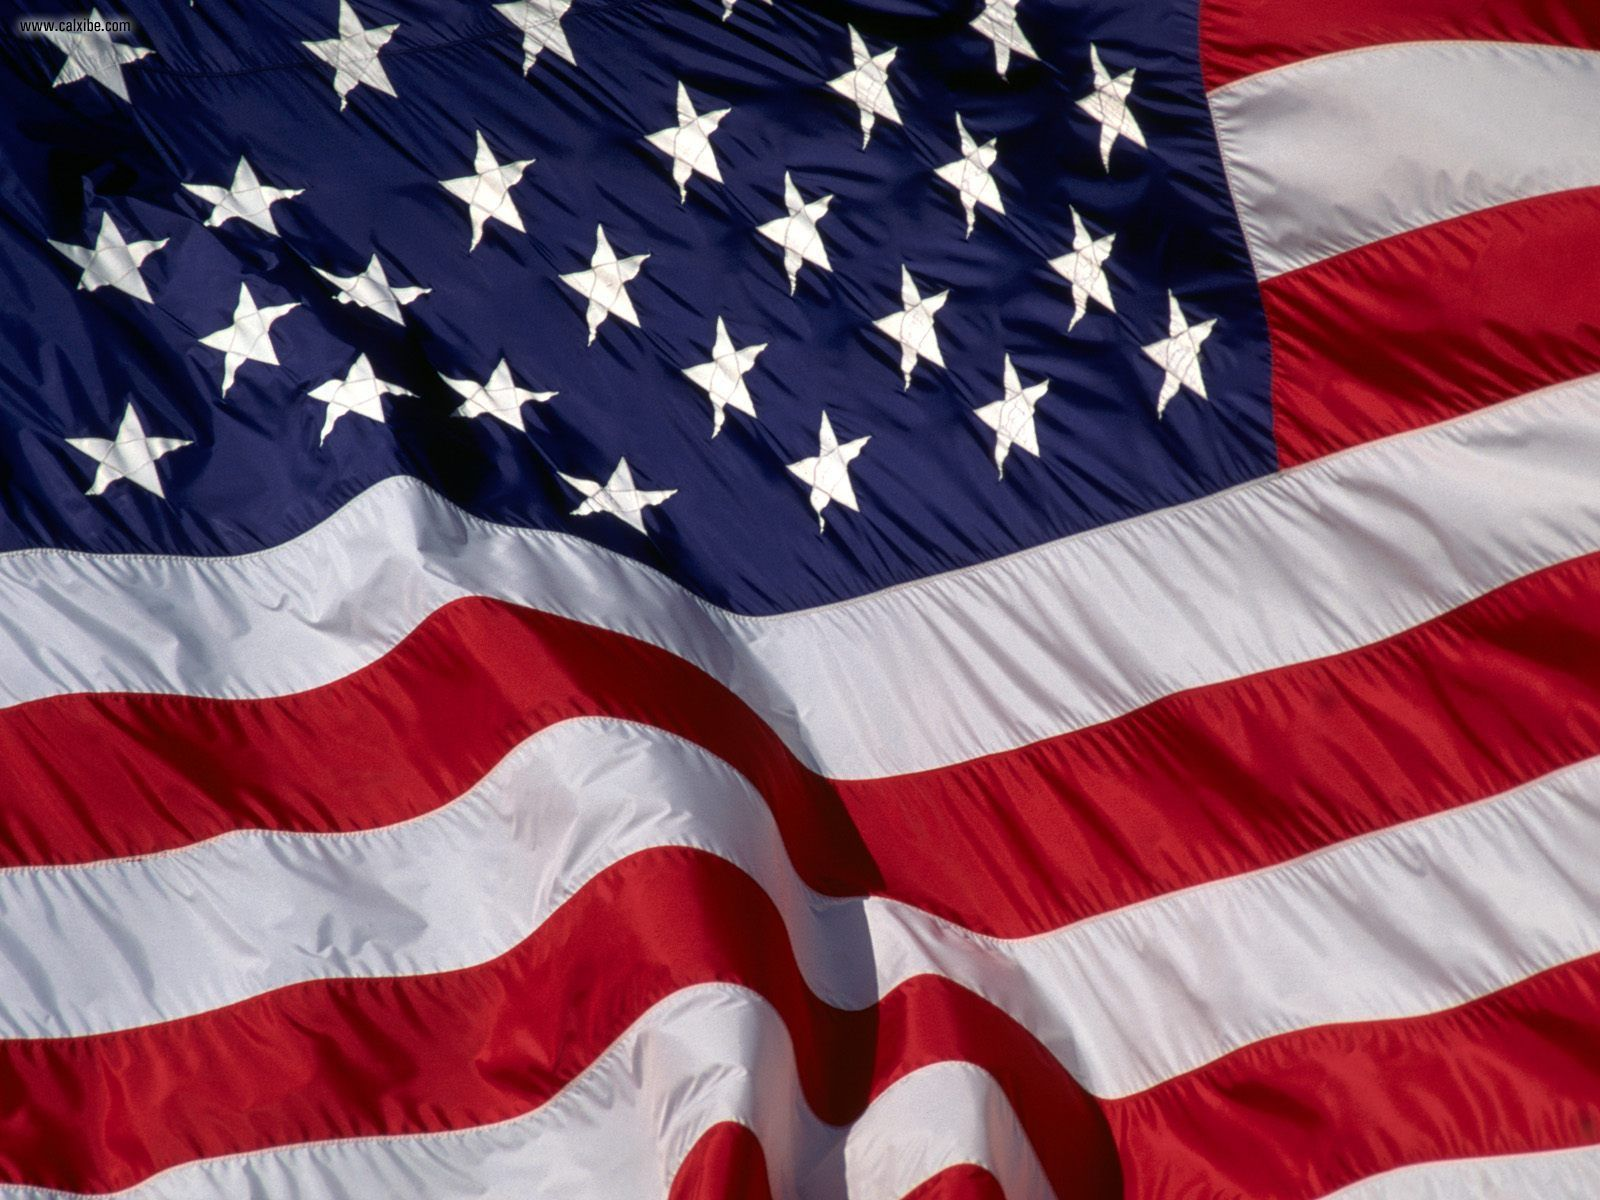 USA Flag Wallpaper Patriotic and Proud United States Flag HD 1600x1200